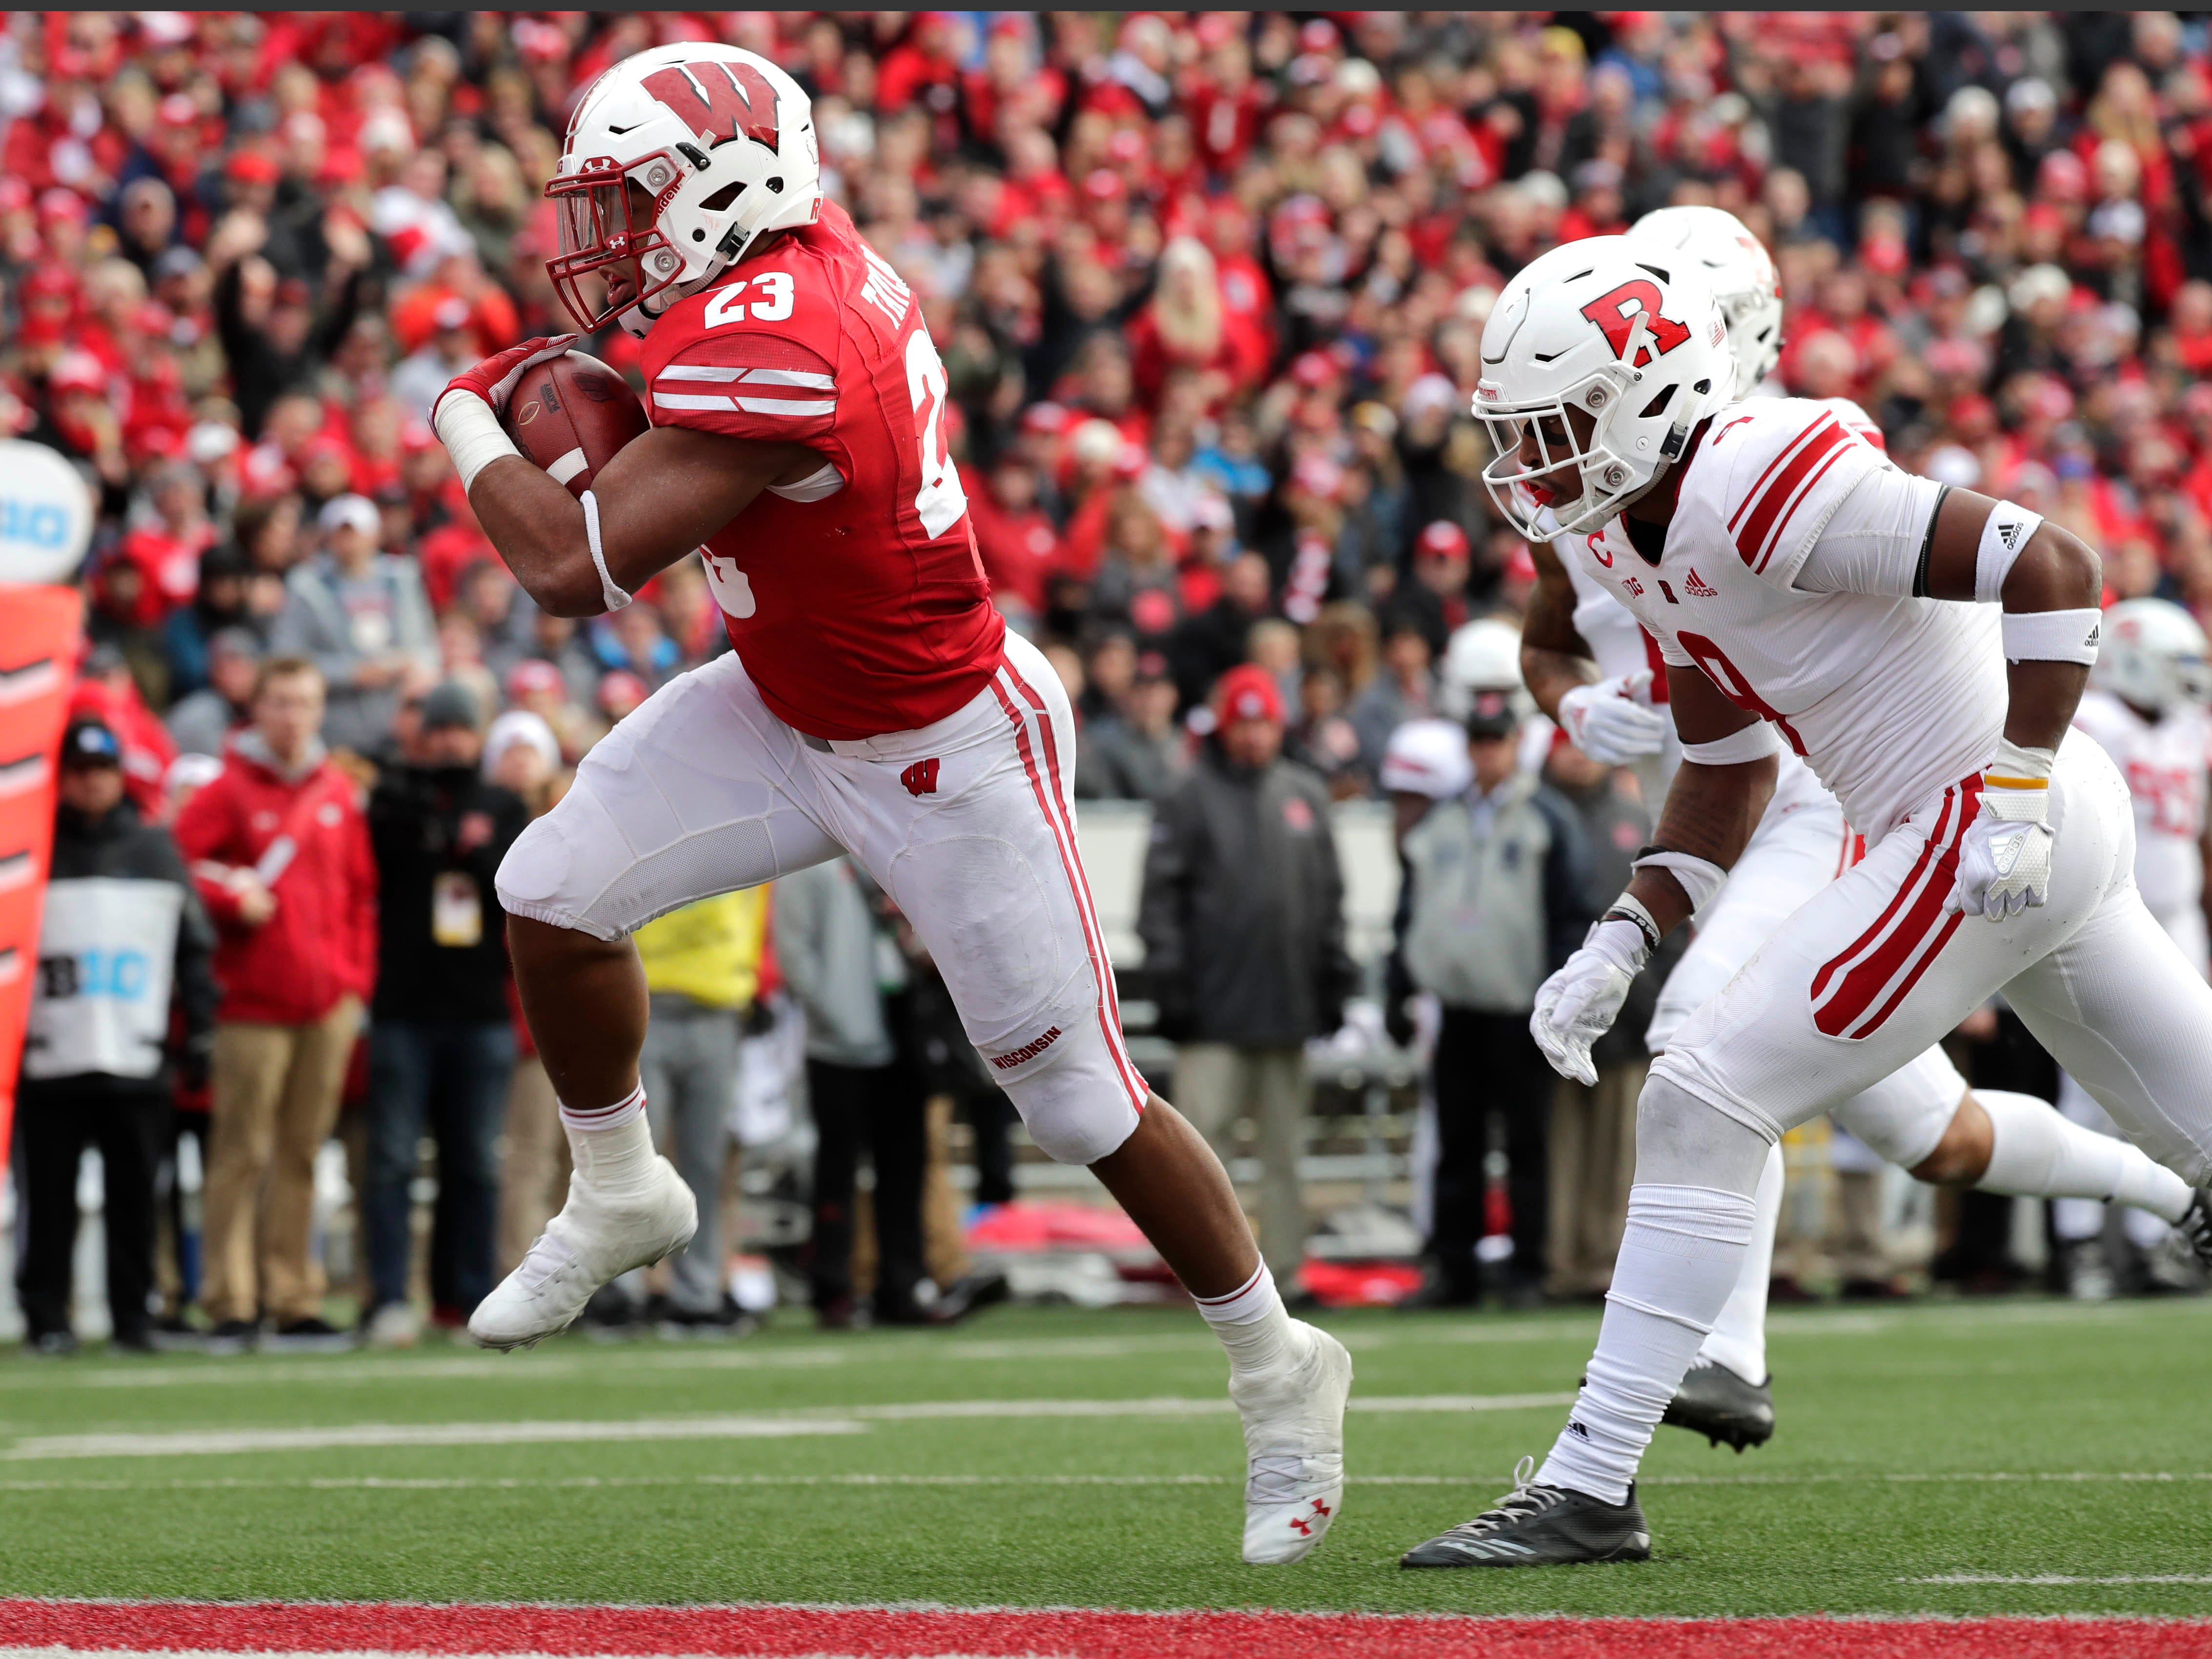 Wisconsin running back Jonathan Taylor finds the end zone after an 18-yard run against Rutgers during the third quarter Sunday.